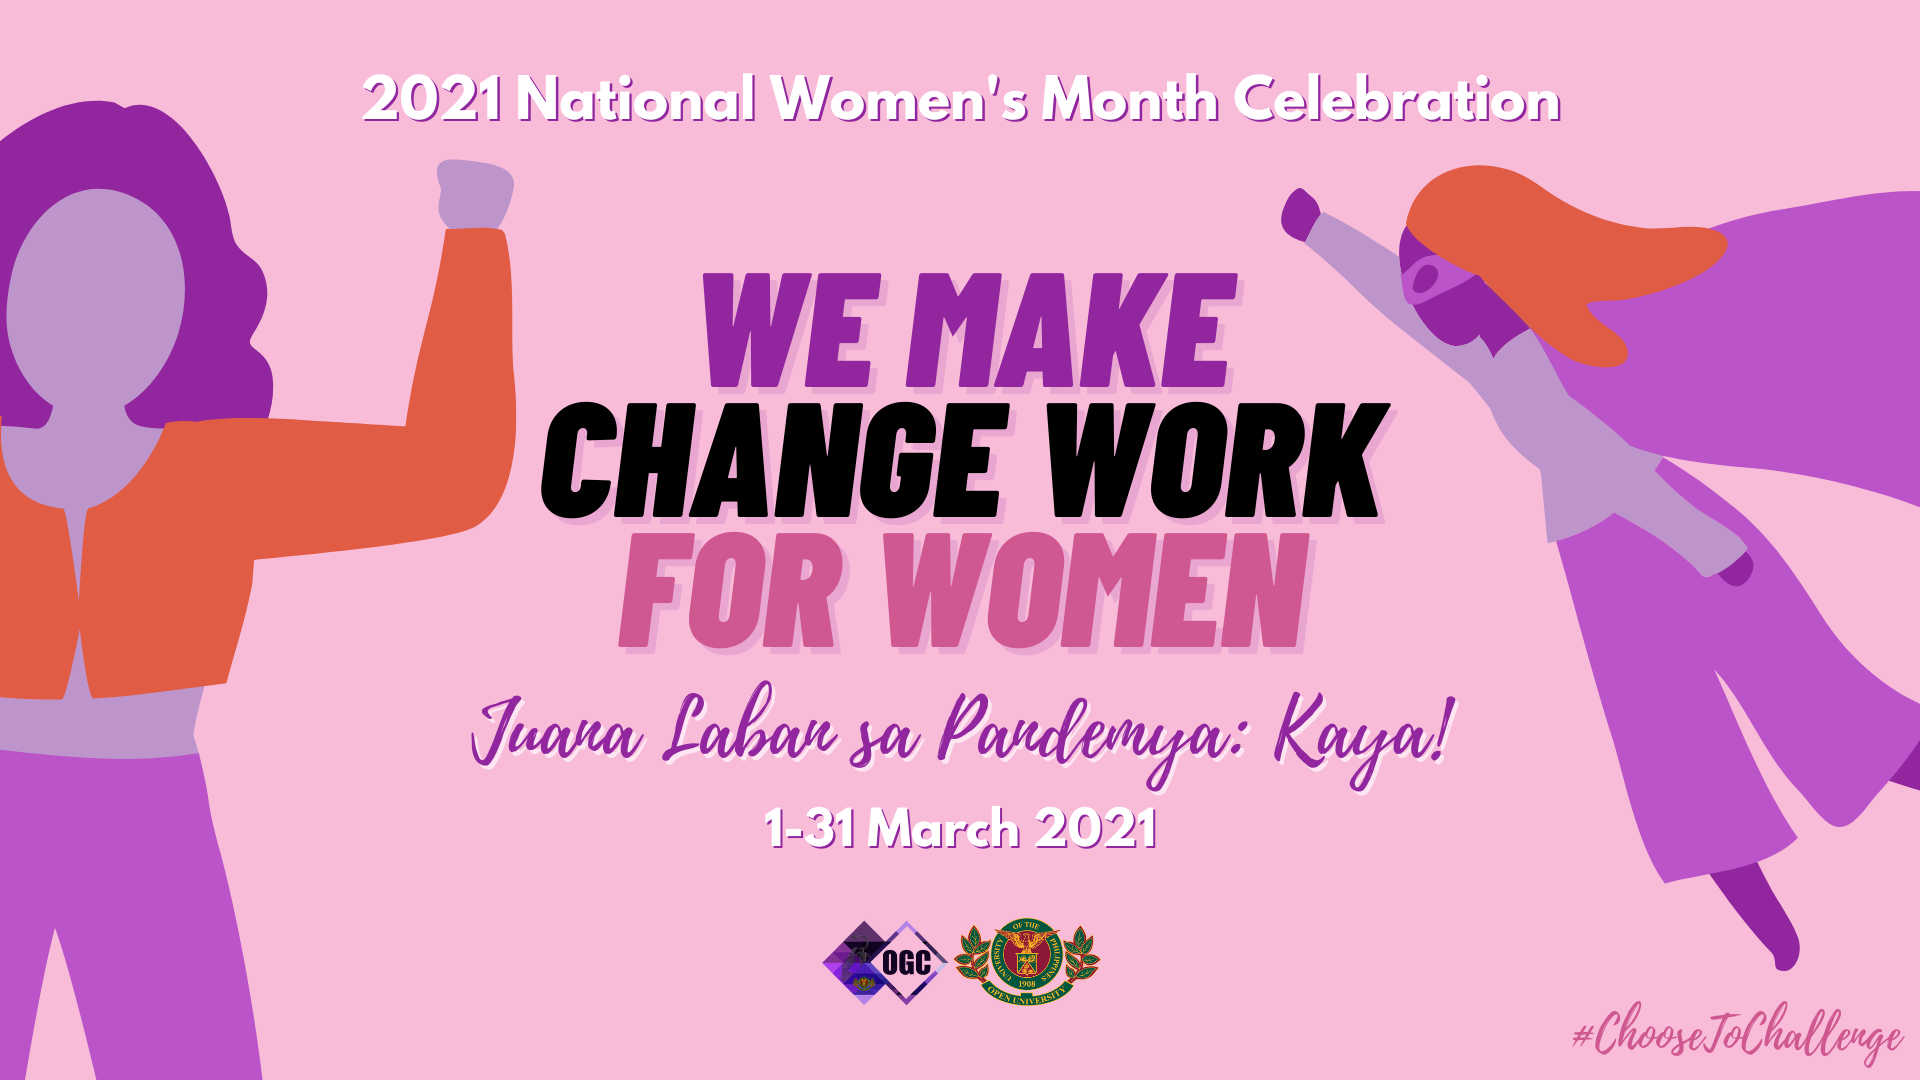 UP Open University Unveils Most Awaited Activities for National Women's Month 2021